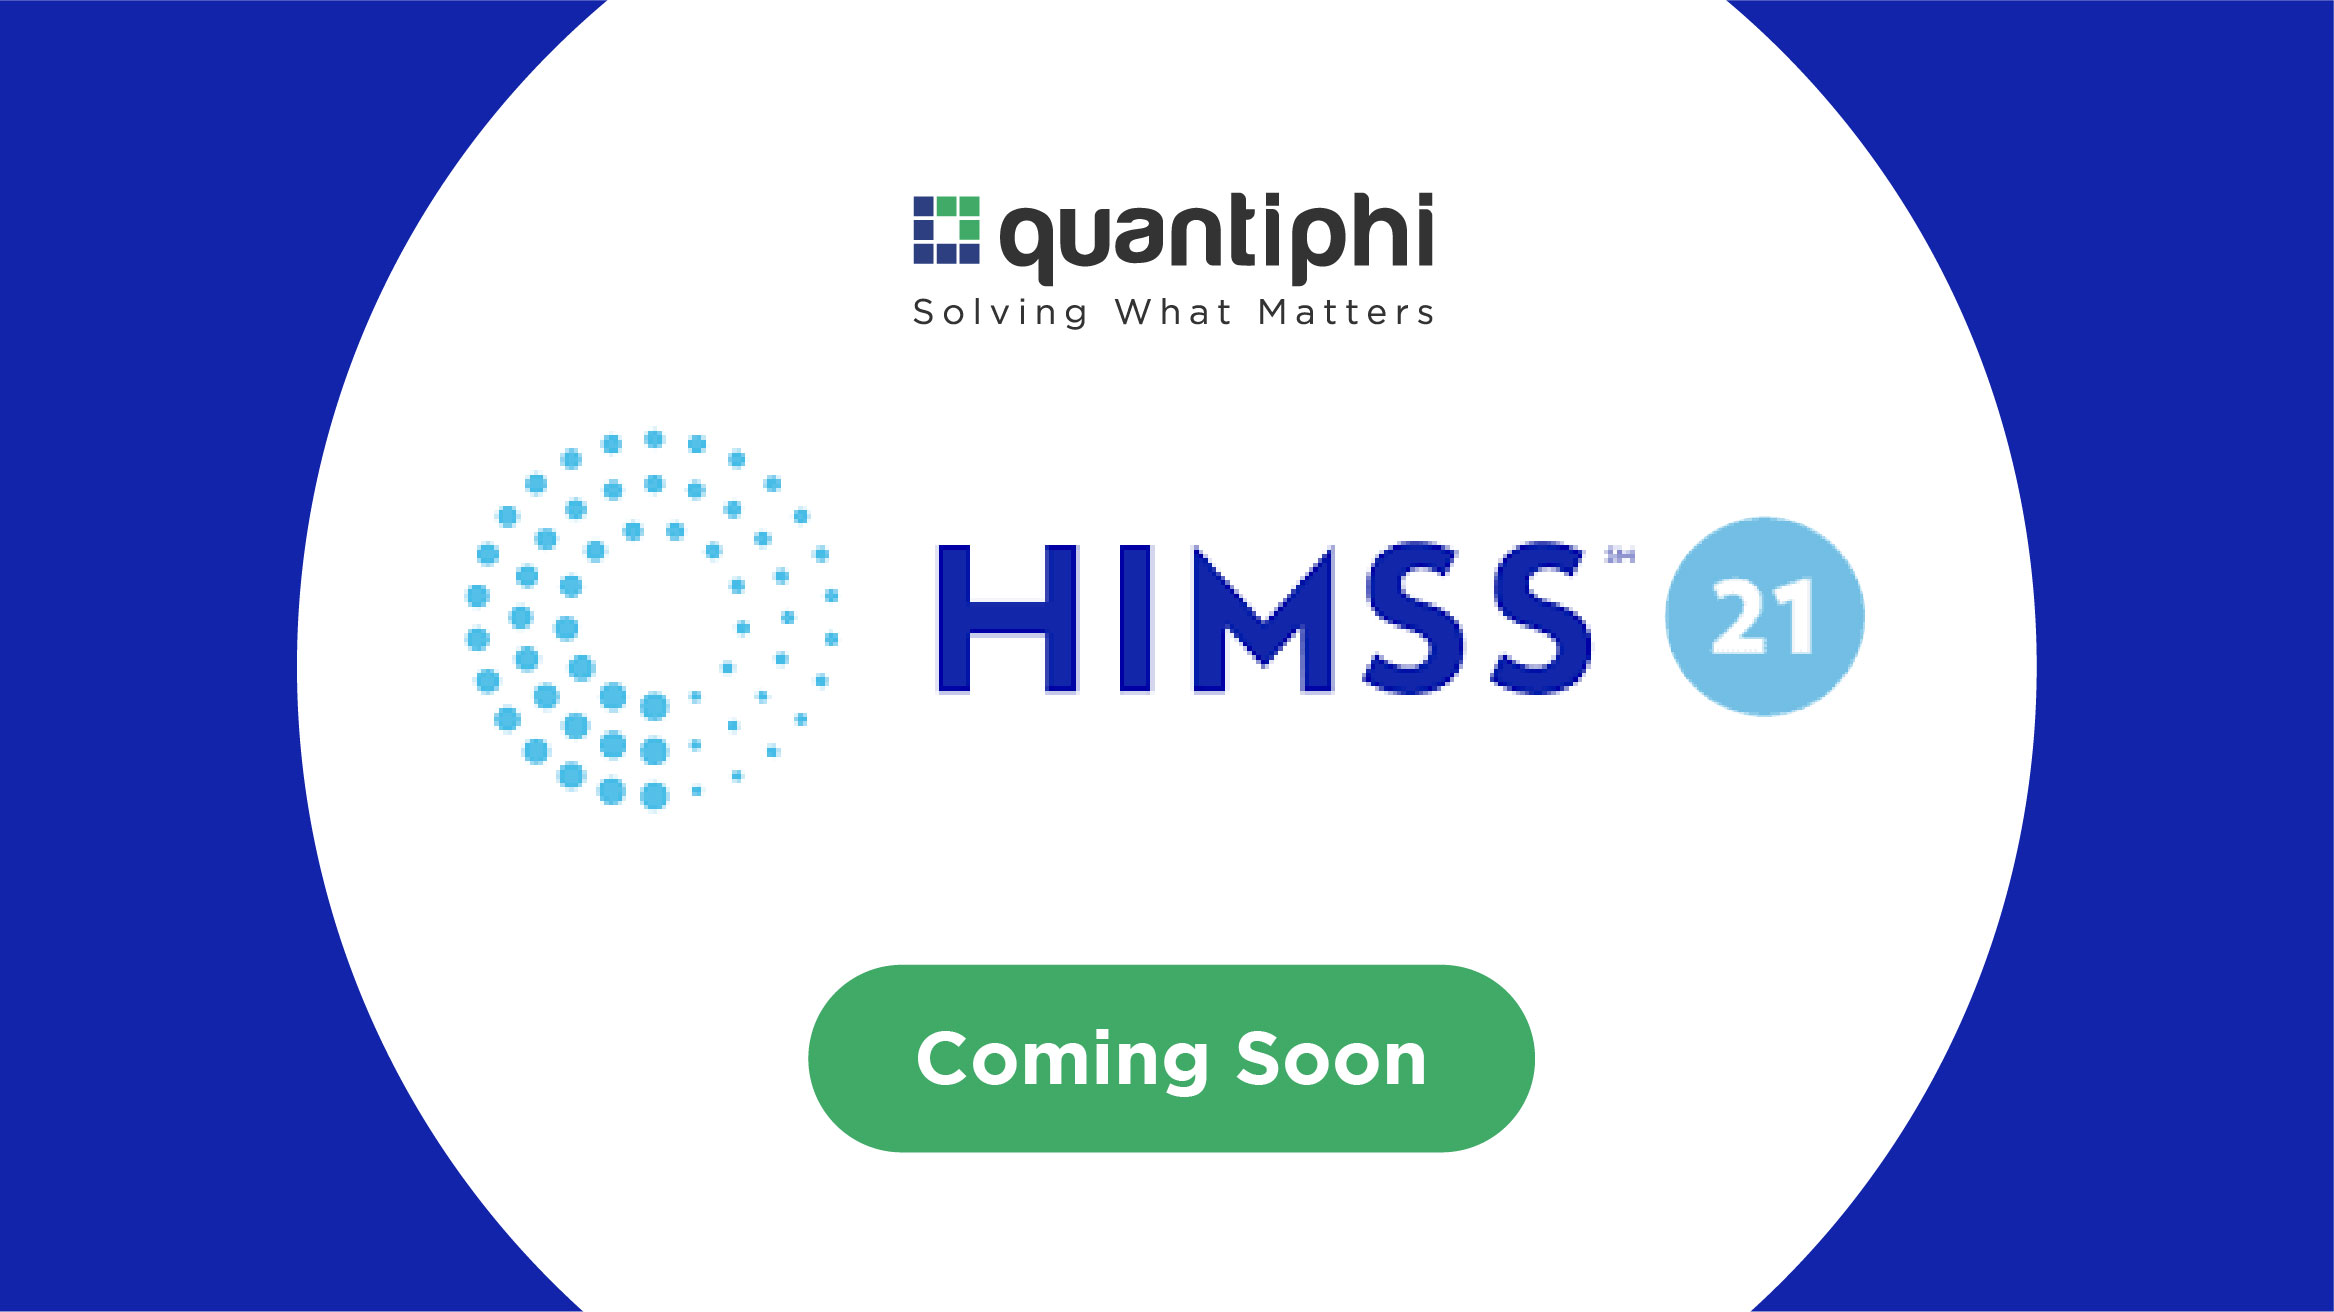 HIMSS Global Health Conference